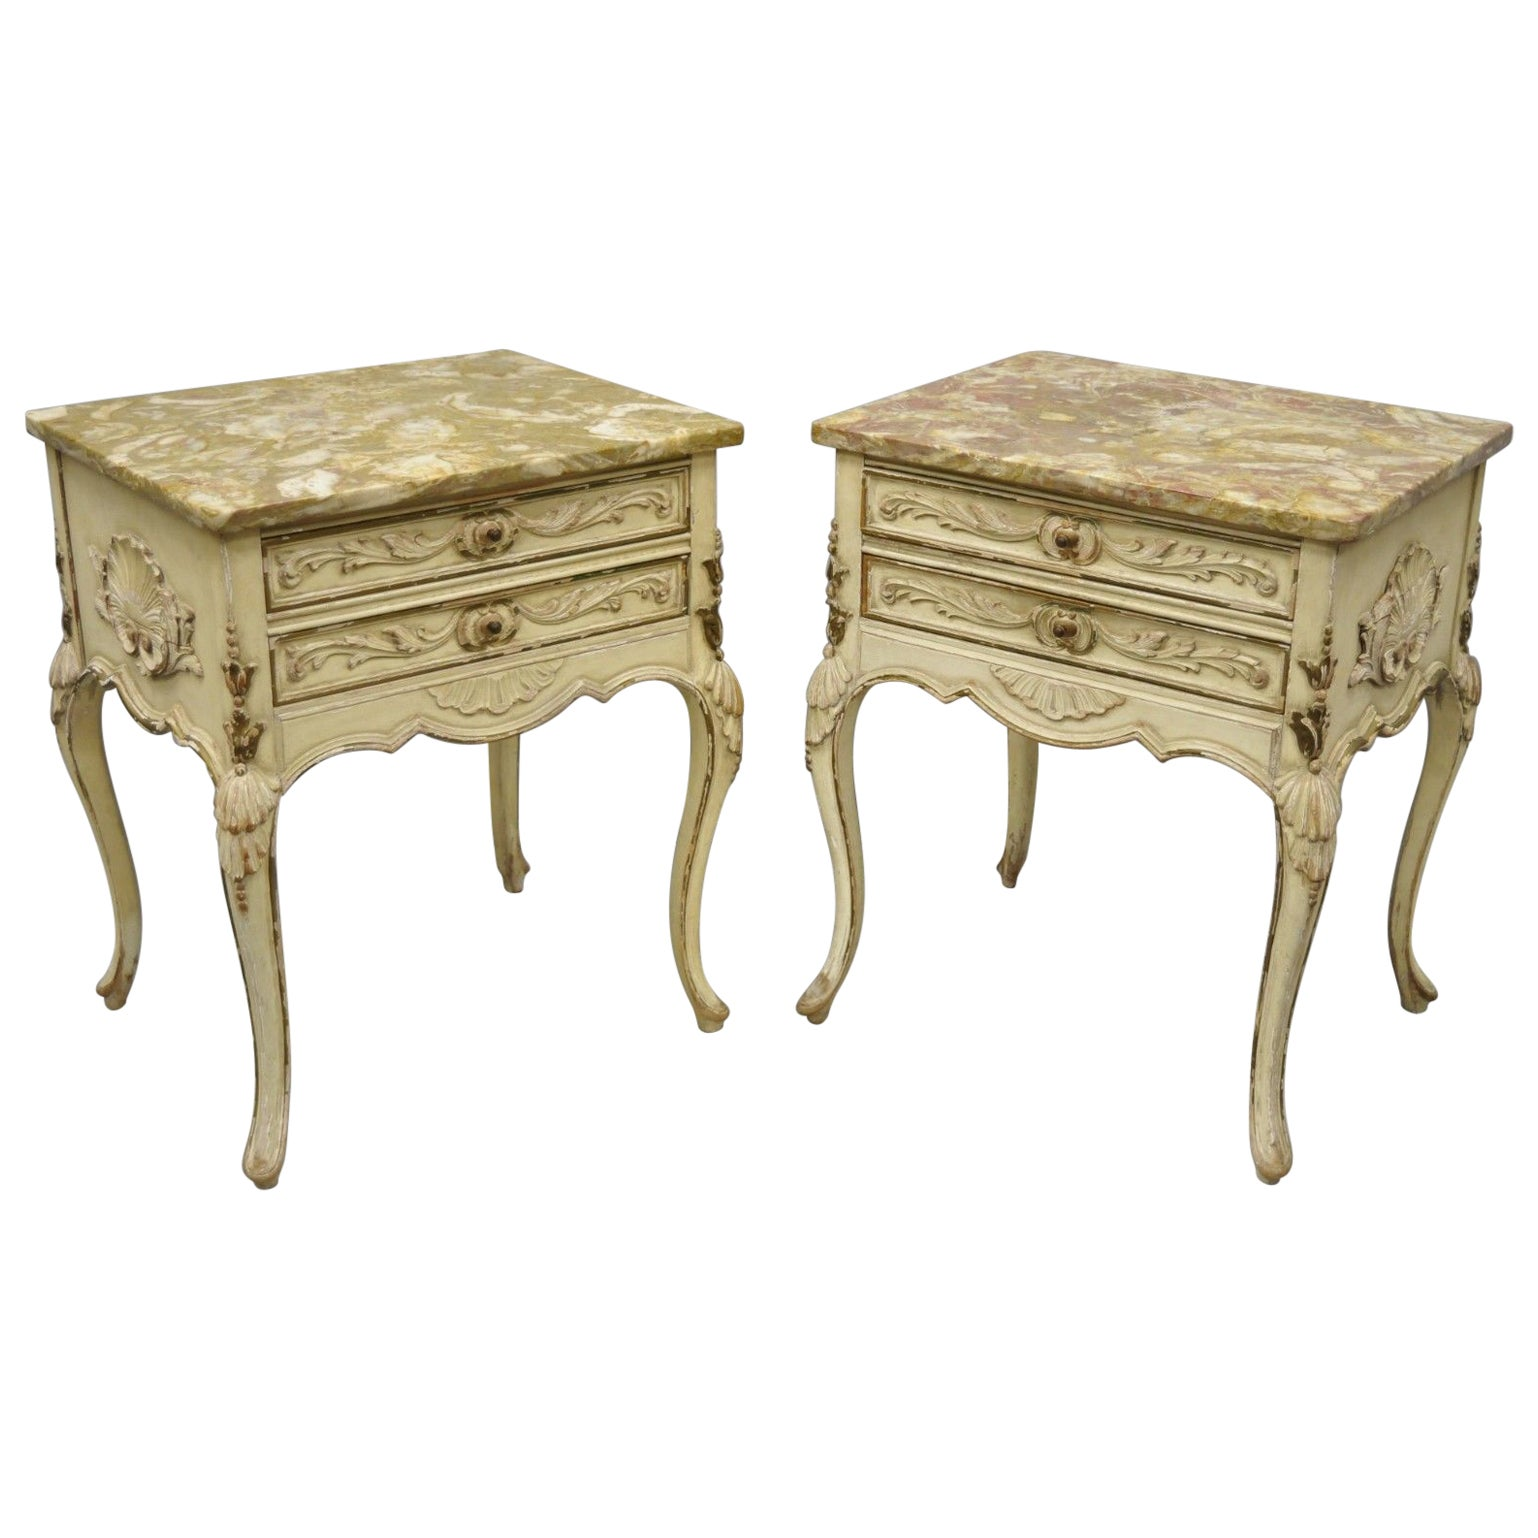 Pair of Distress Painted Louis XV Marble-Top Nightstands or End Tables by Danby